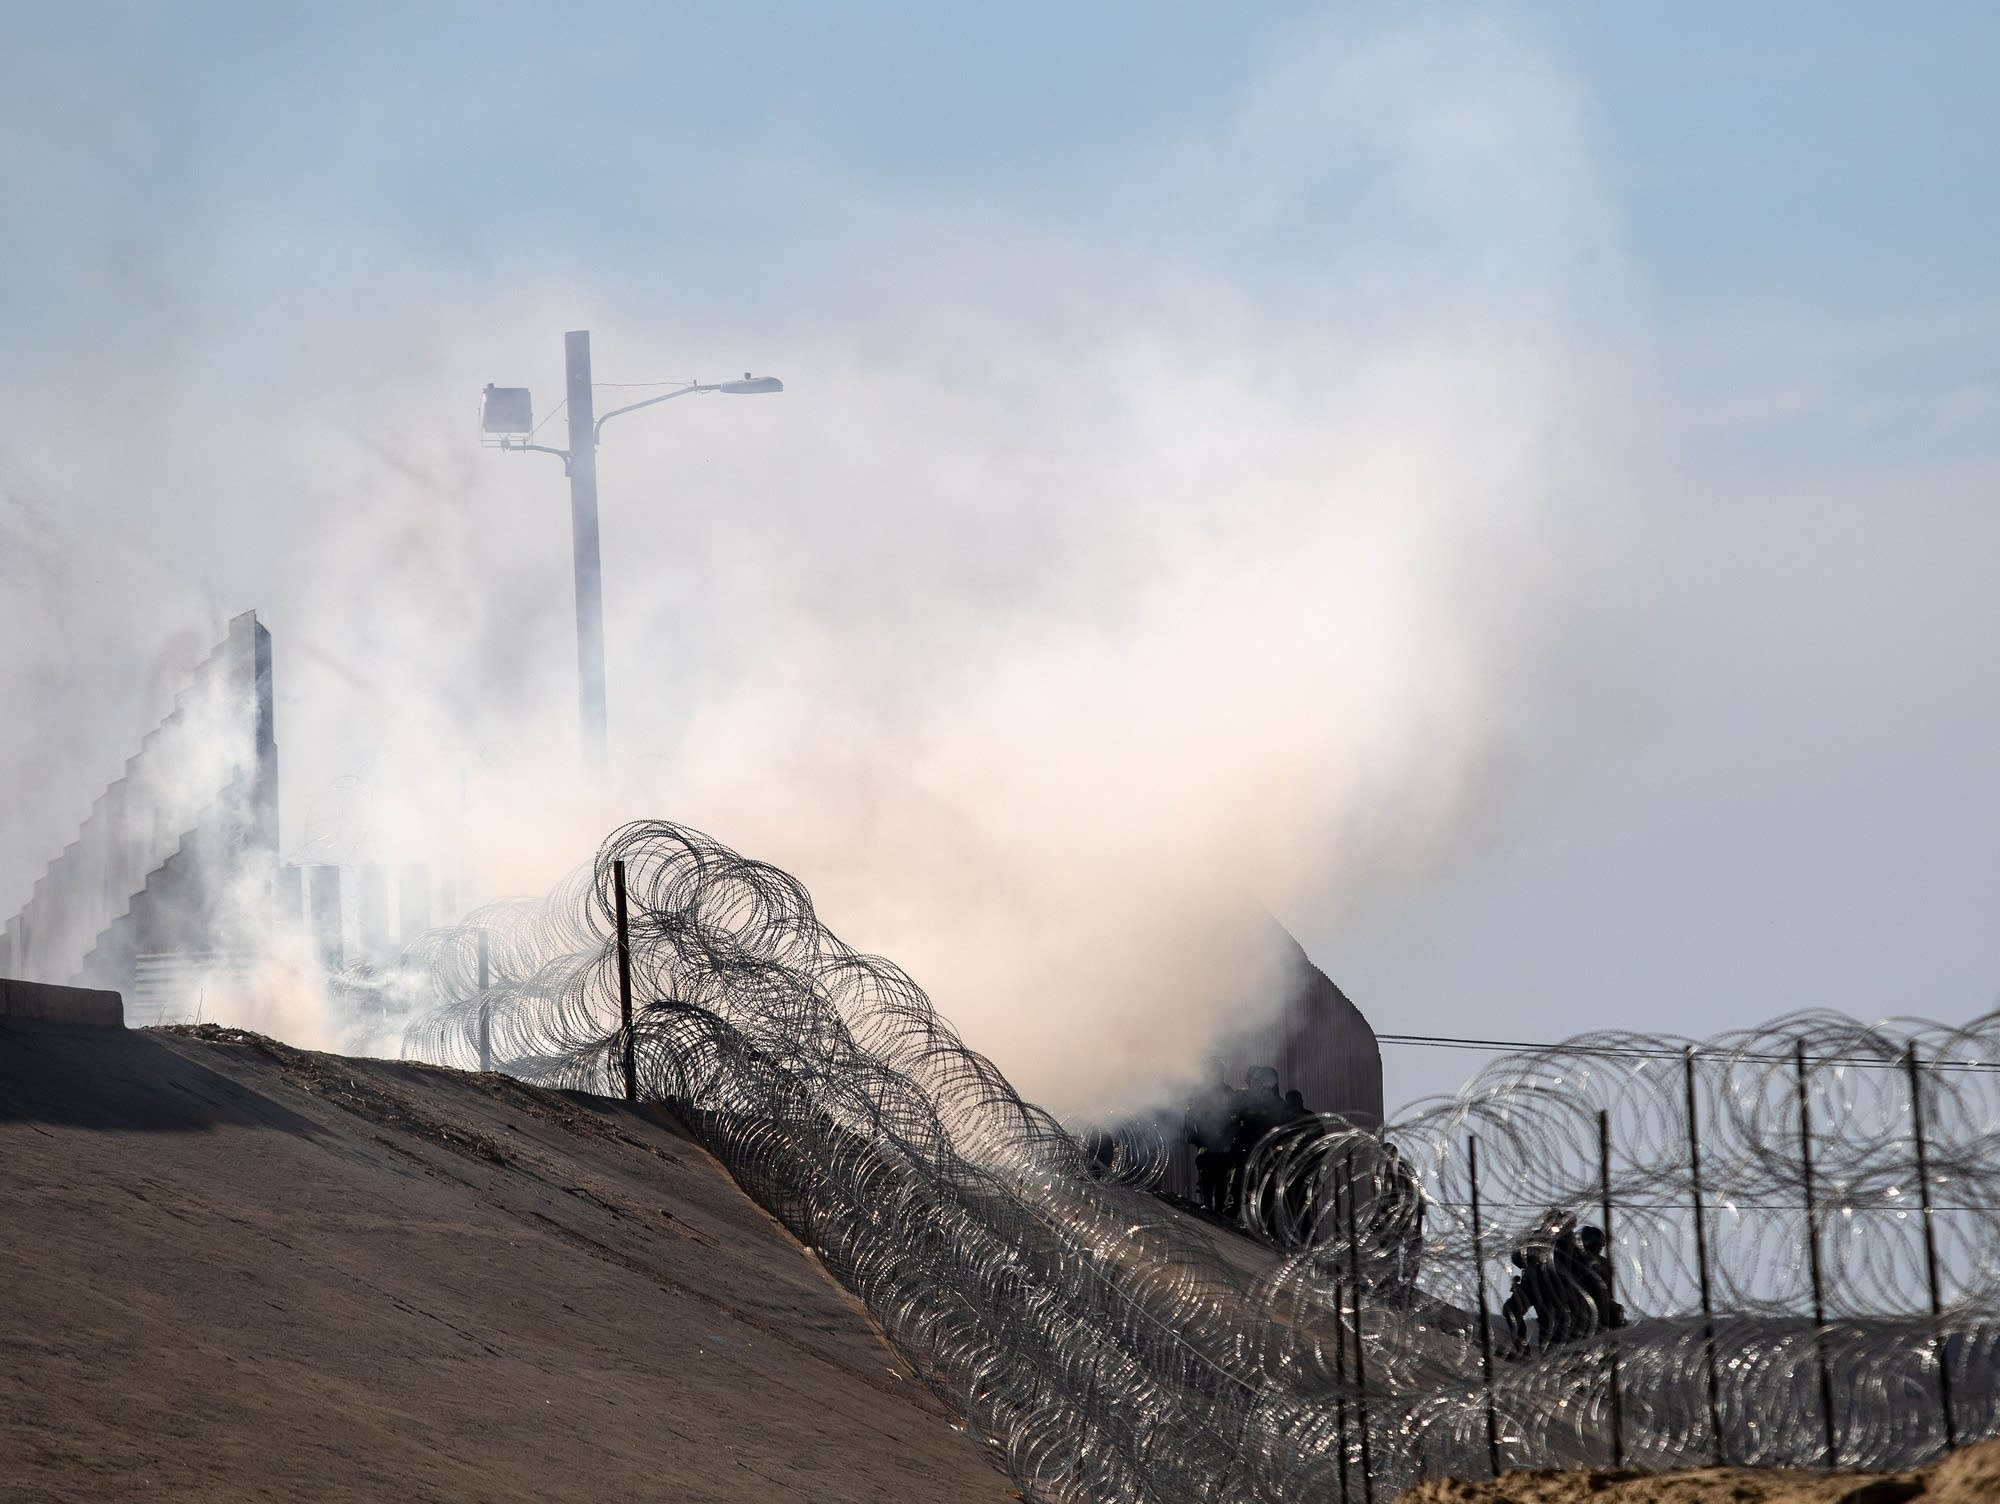 Tear gas used by the U.S. Border Patrol